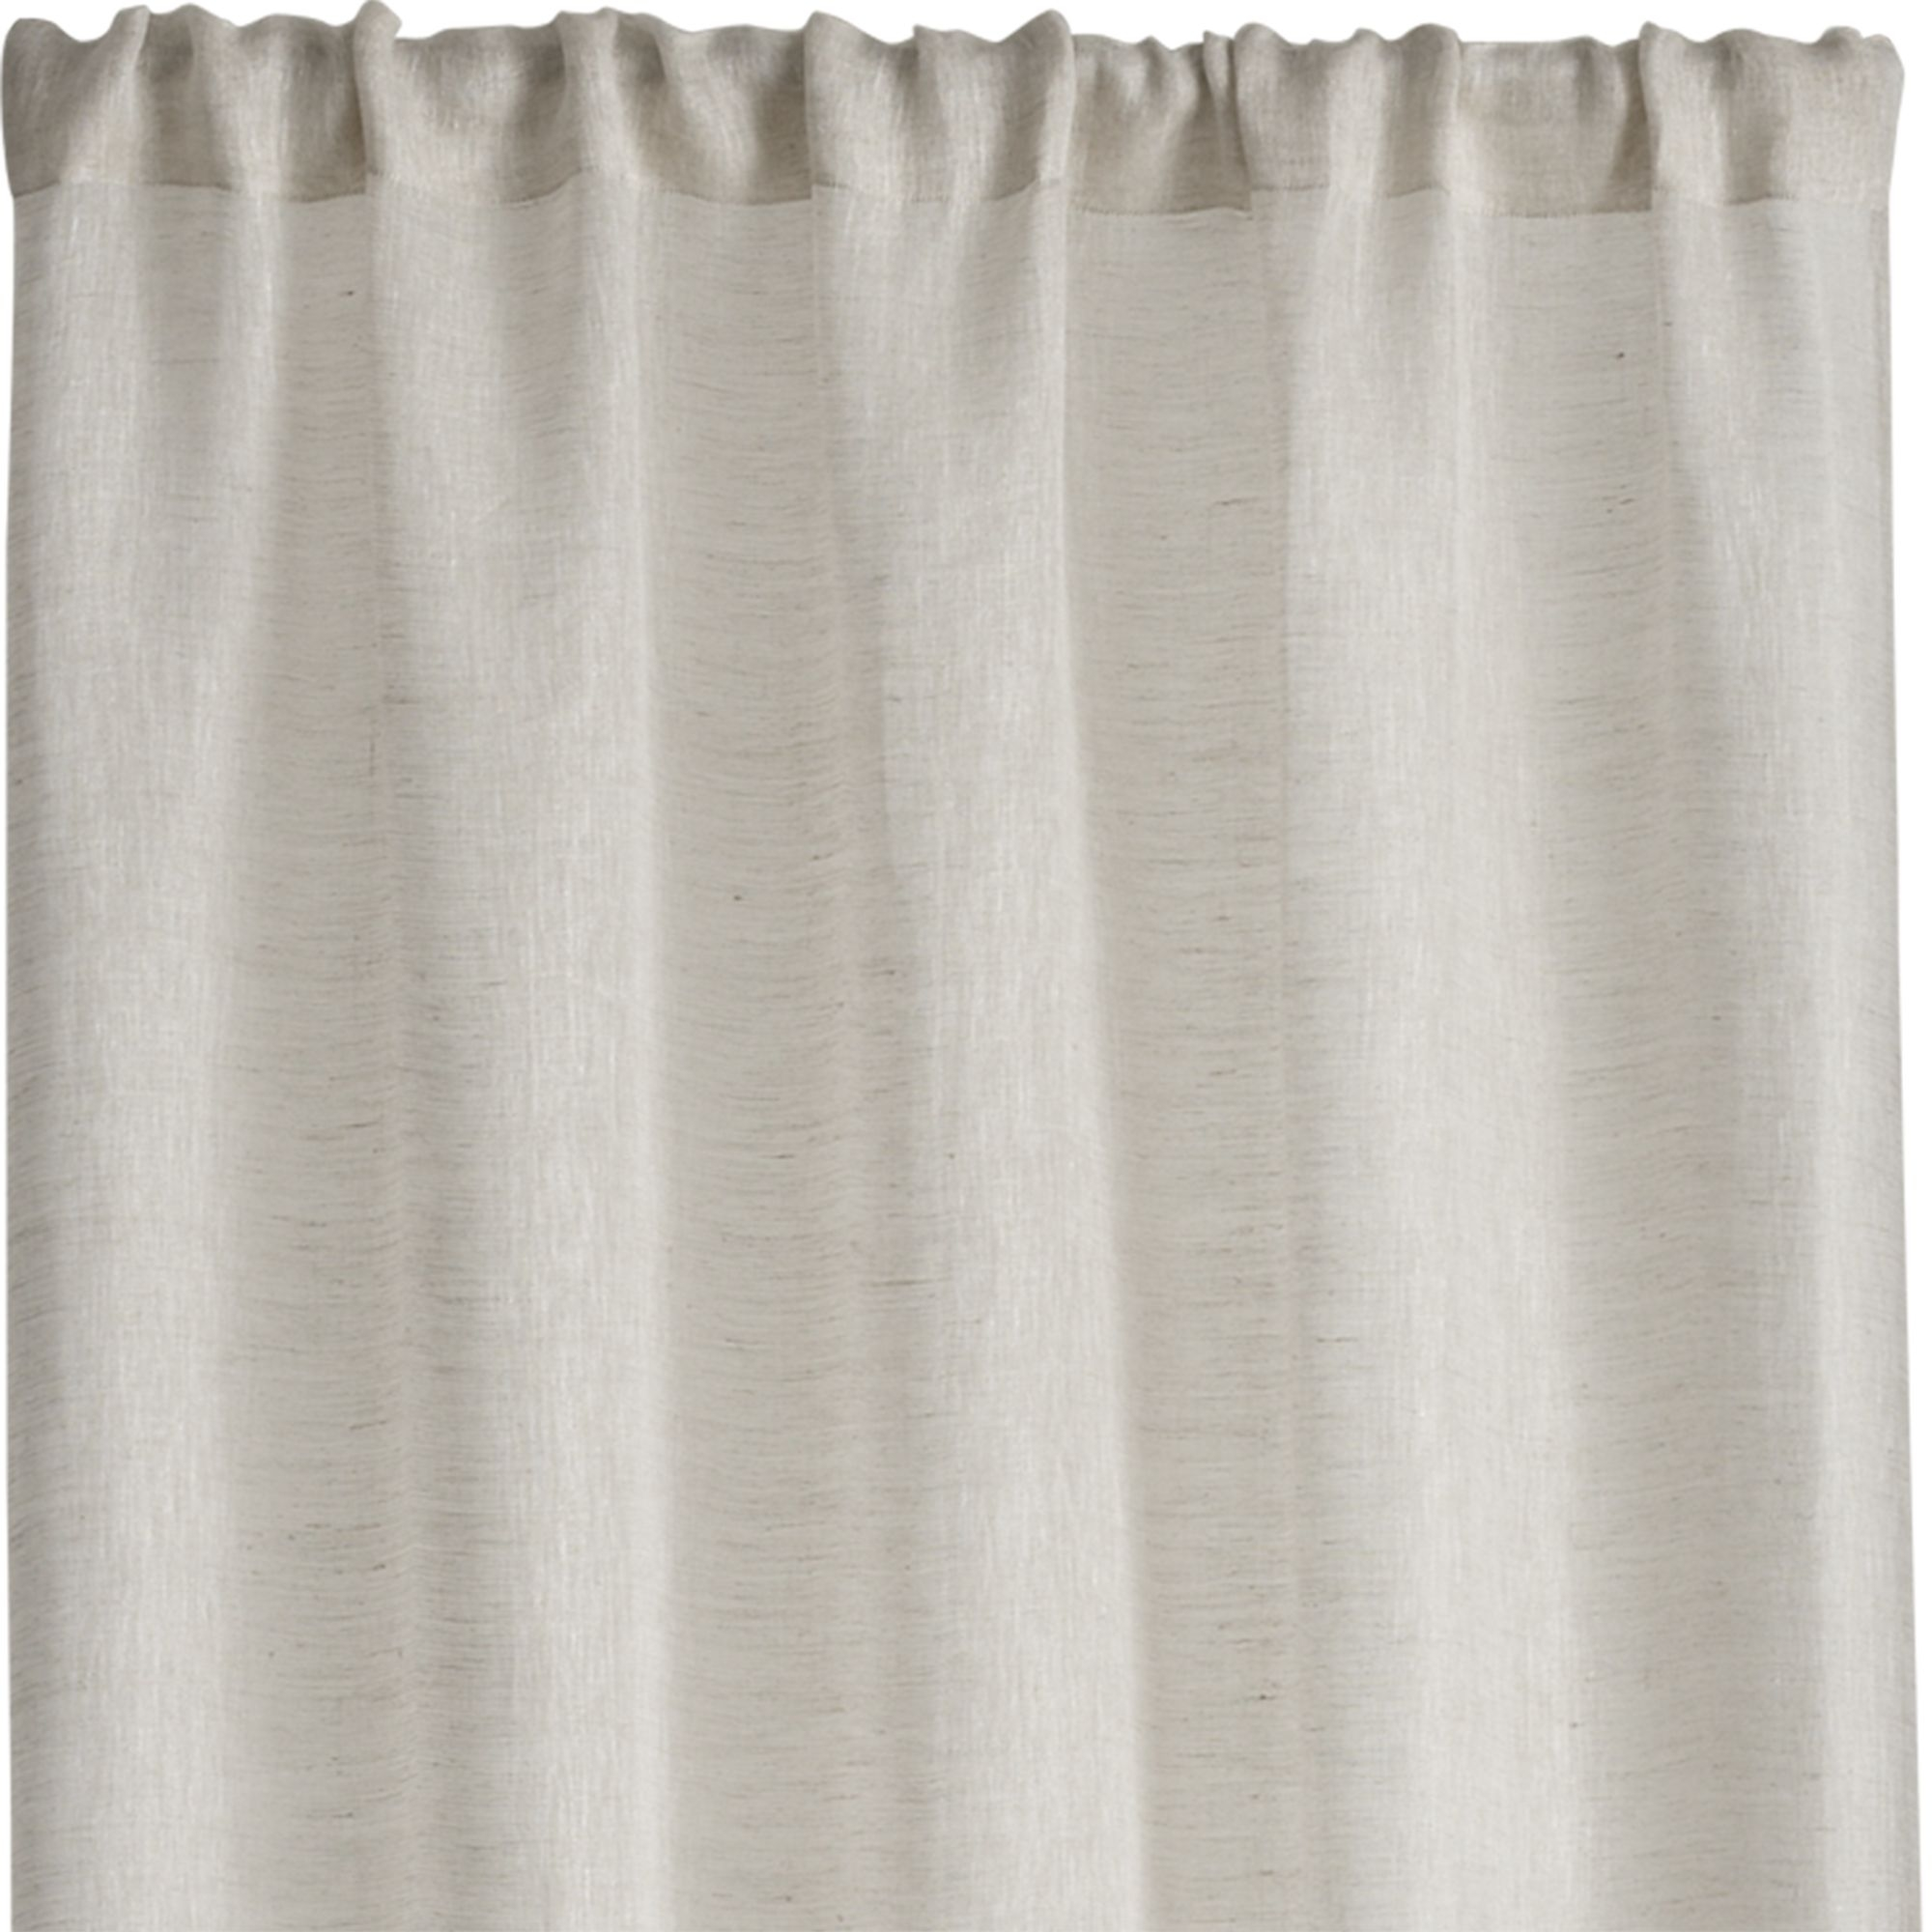 Linen Sheer 52×84 Natural Curtain Panel Natural Linen Natural With Regard To Natural Curtain Panels (View 15 of 15)